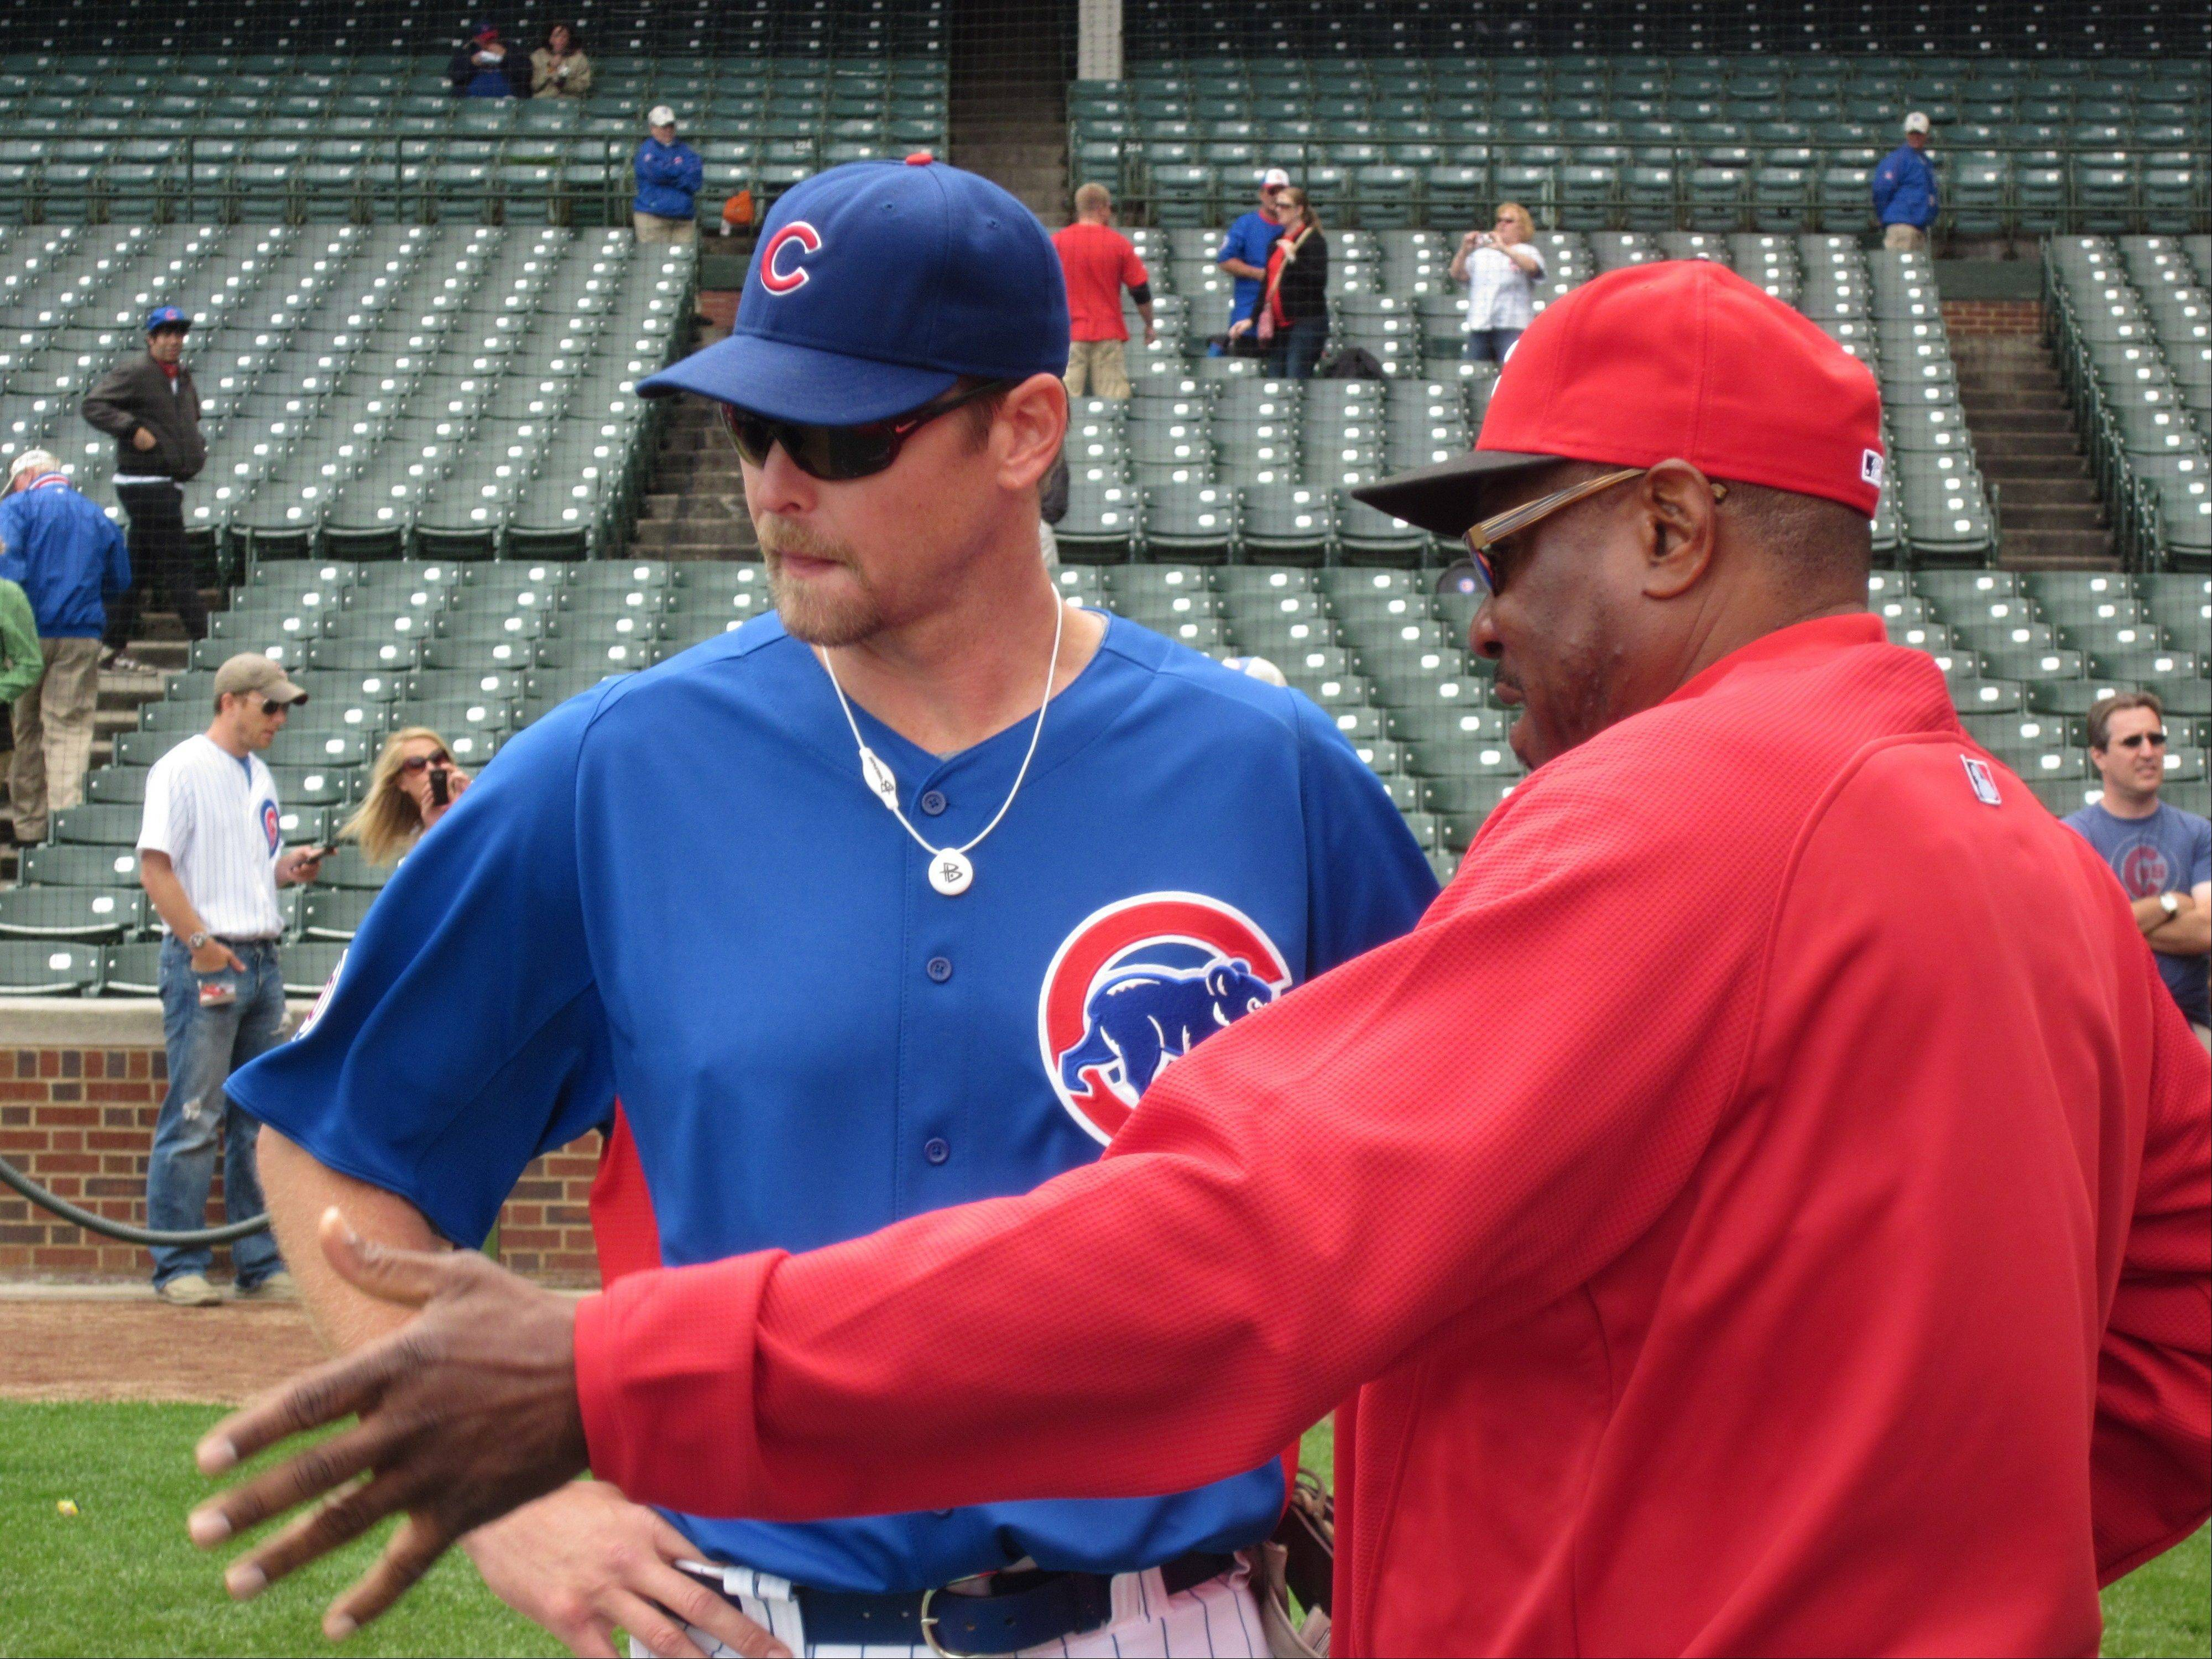 Cubs reliever Kerry Wood talks with Reds manager Dusty Baker before Monday's game at Wrigley Field.